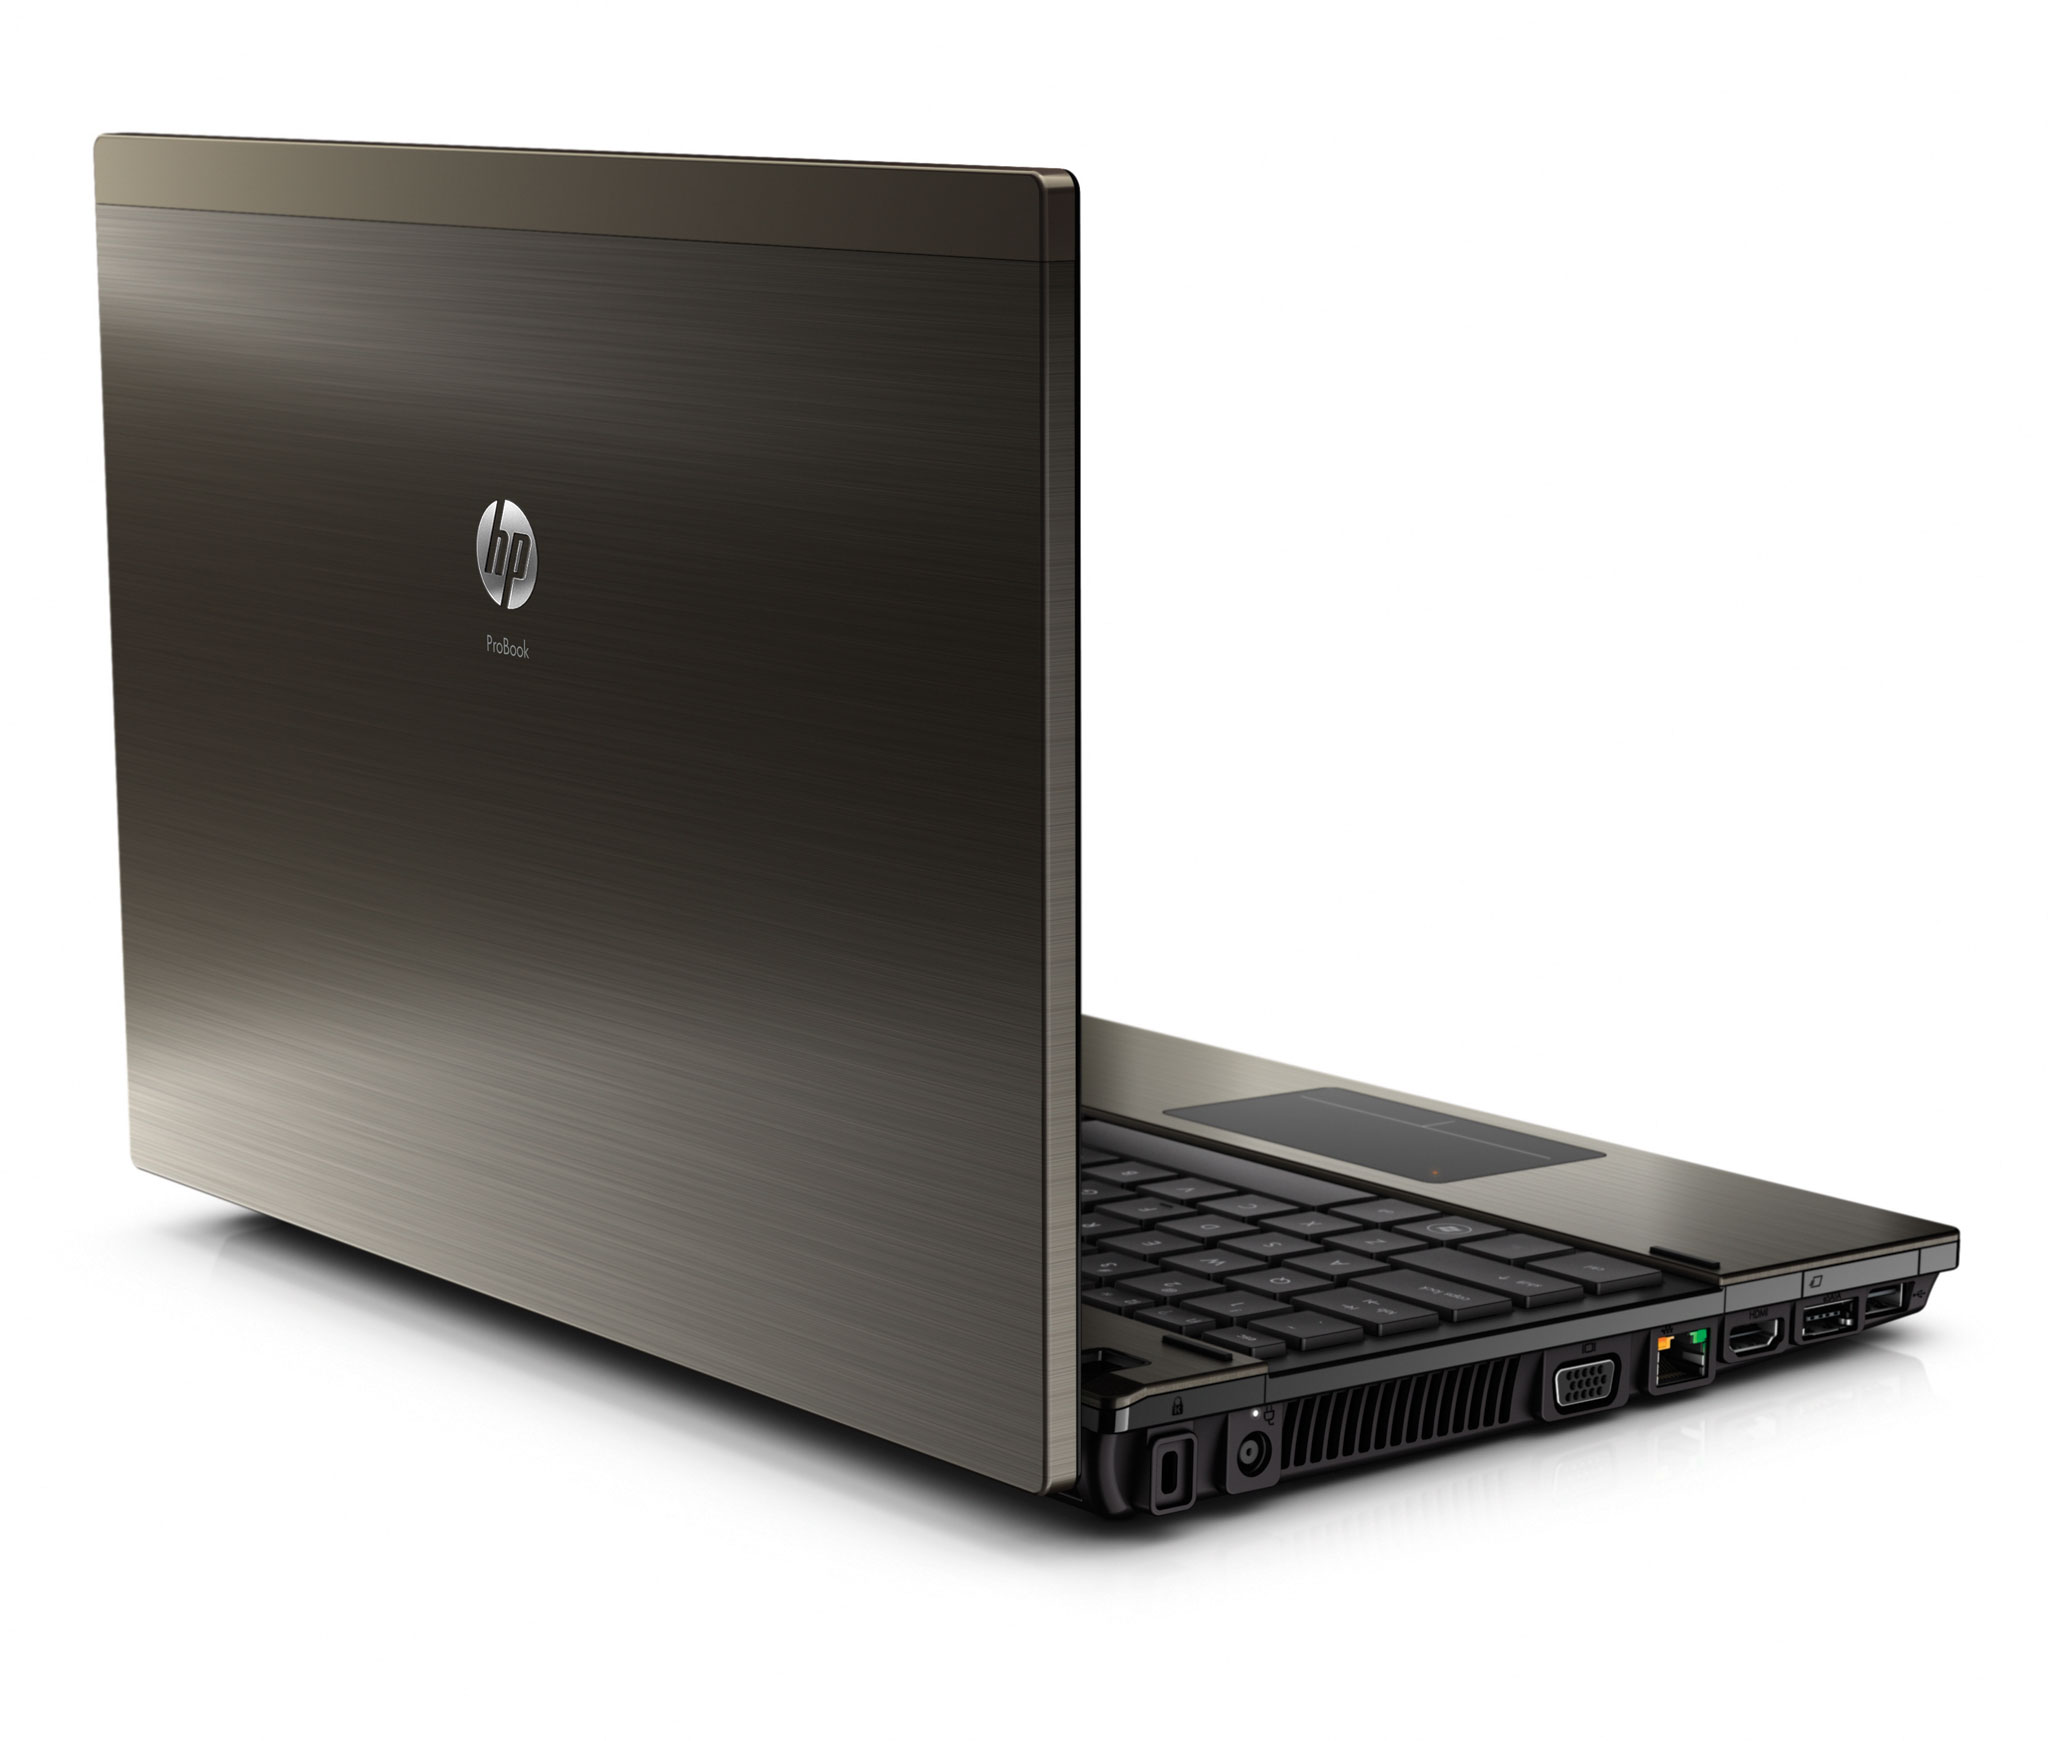 Announcing: HP 4320t Mobile Thin Client